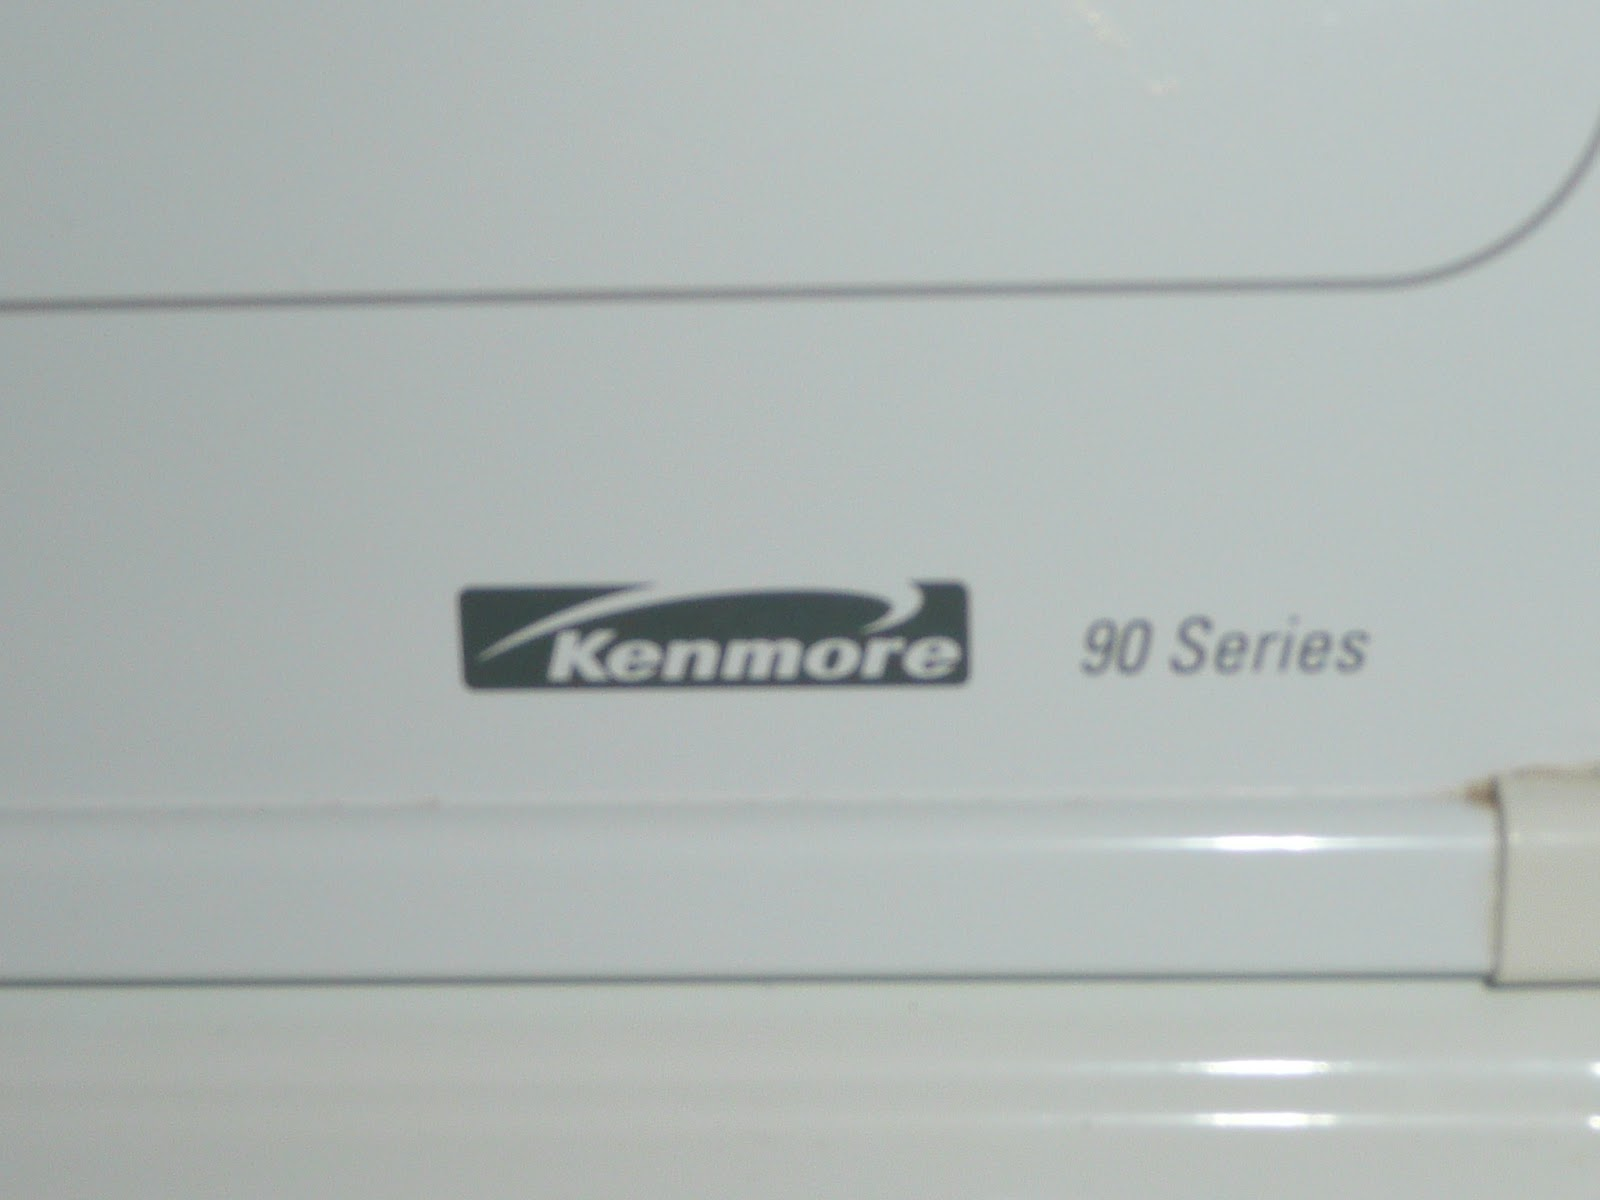 Wiring Diagram For Kenmore Dryer Model 110 Furthermore Kenmore Dryer